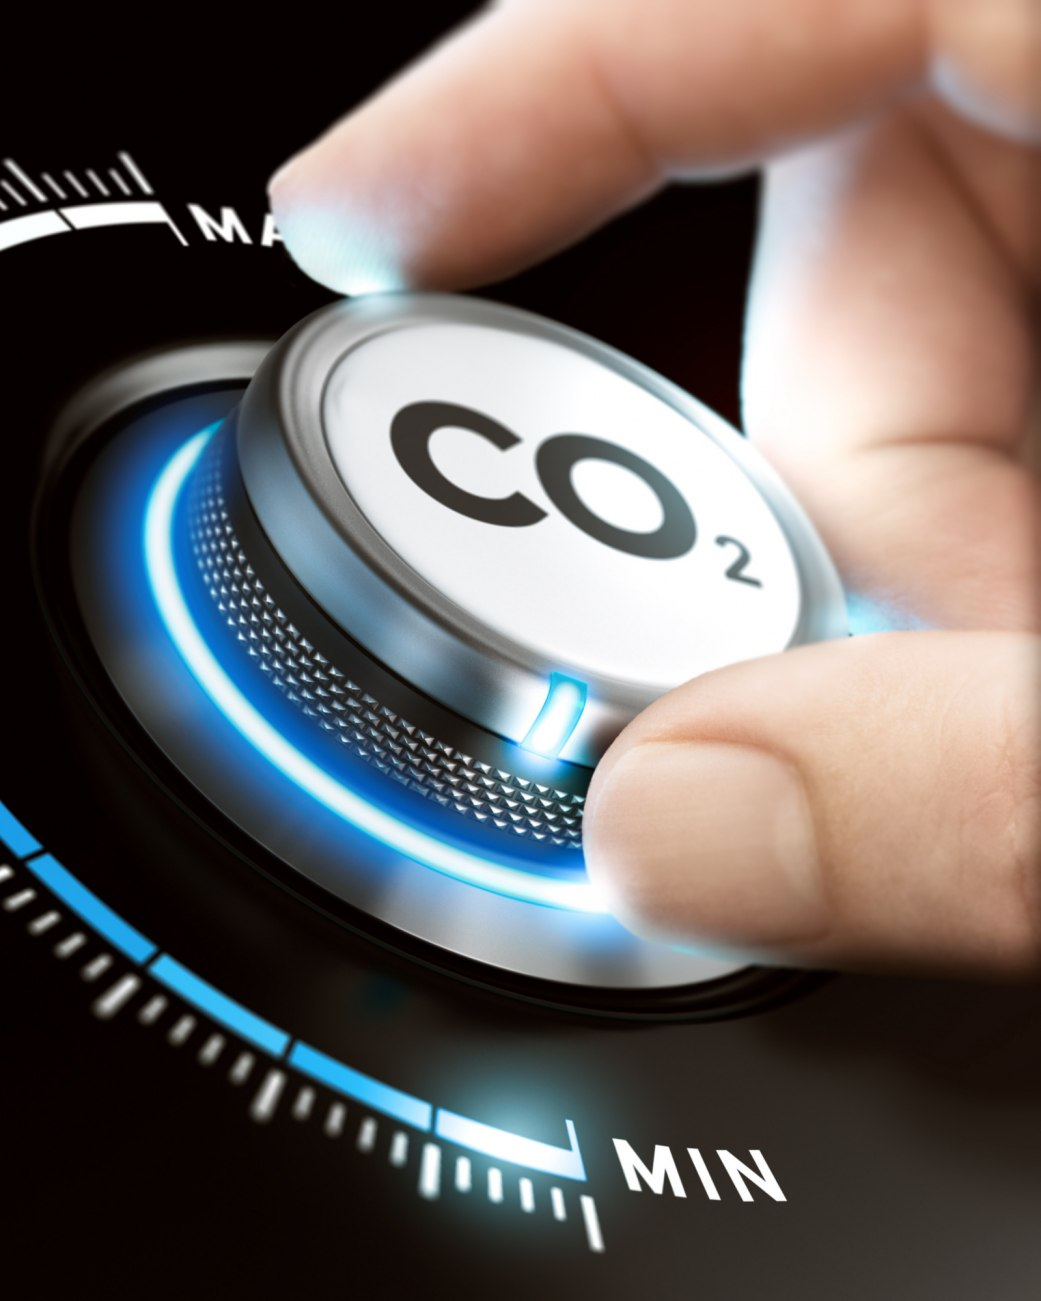 CO2-Bilanz, © Olivier Le Moal/stock.adobe.com